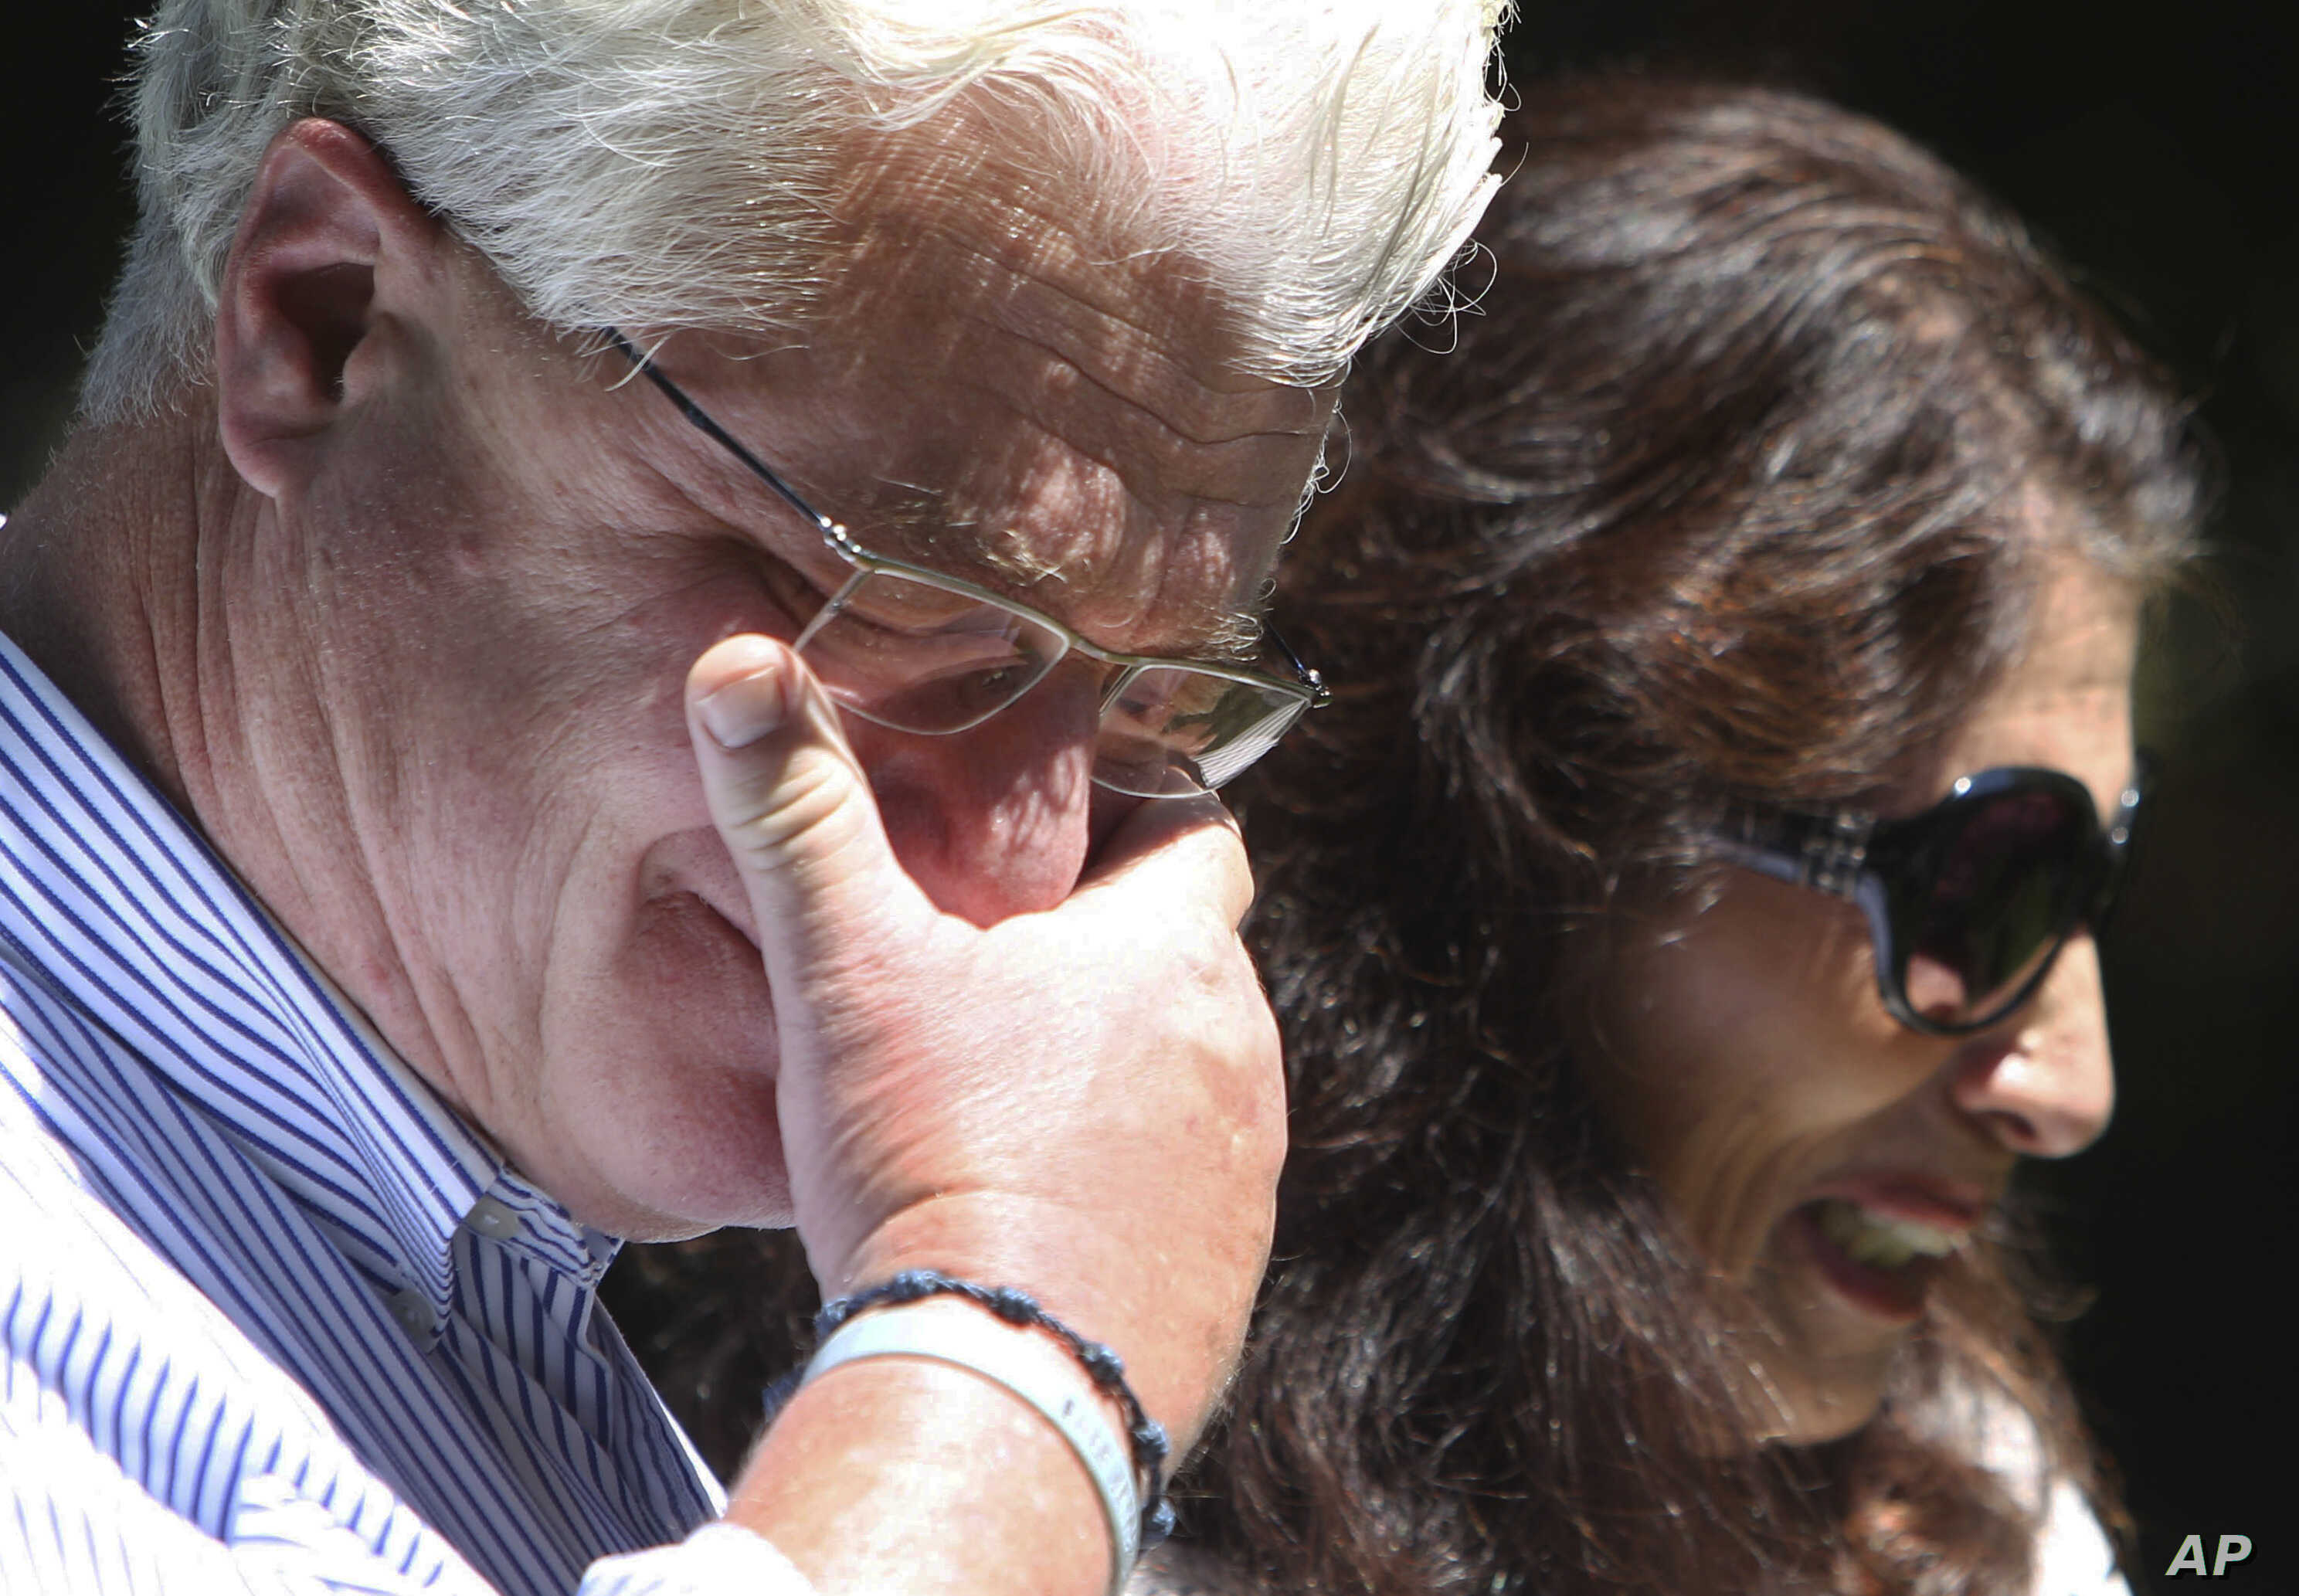 After speaking with U.S. President Barack Obama by phone, John and Diane Foley talk to reporters outside their home in Rochester, N.H, Aug. 20, 2014.